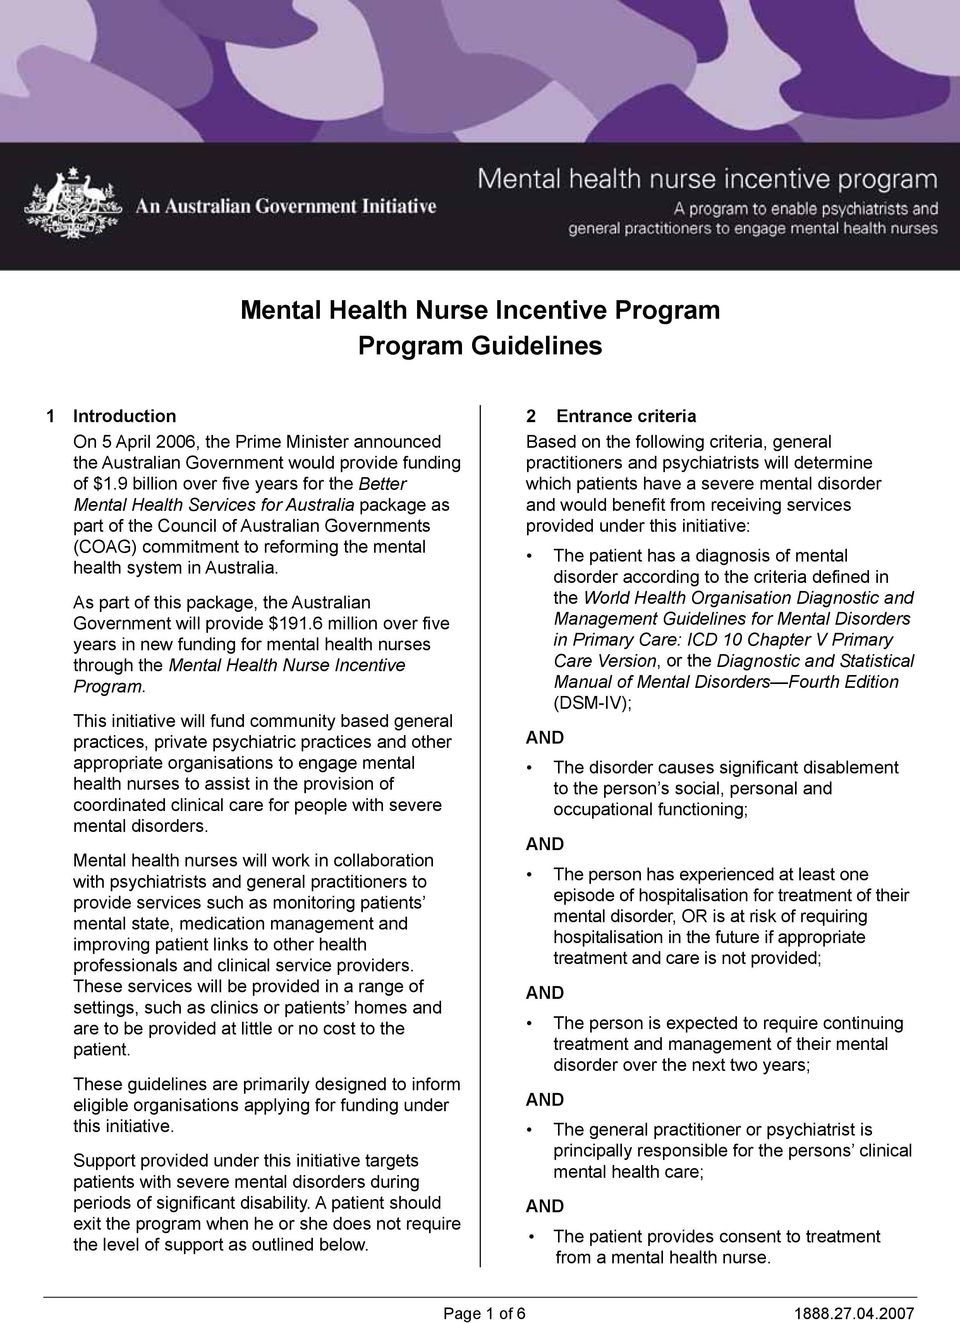 Australia. As part of this package, the Australian Government will provide $191.6 million over five years in new funding for mental health nurses through the Mental Health Nurse Incentive Program.